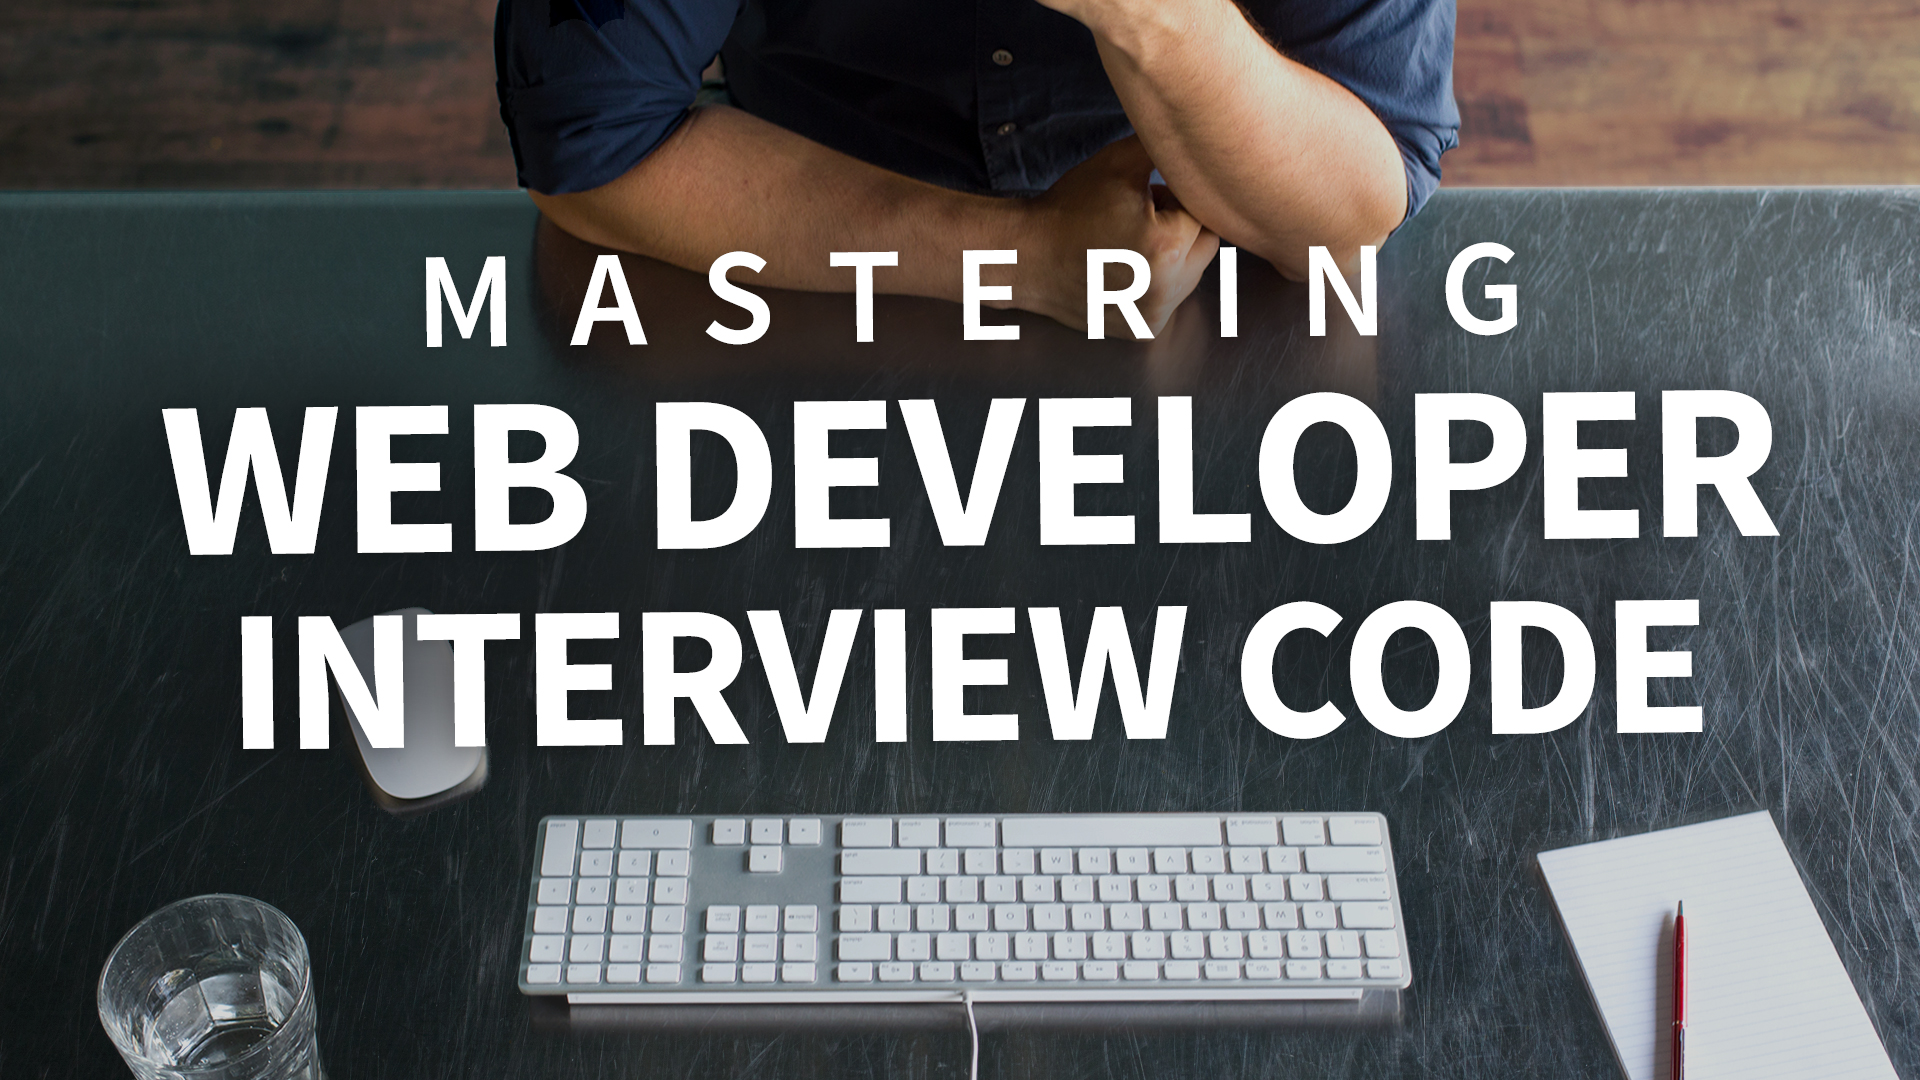 Mastering Web Developer Interview Code